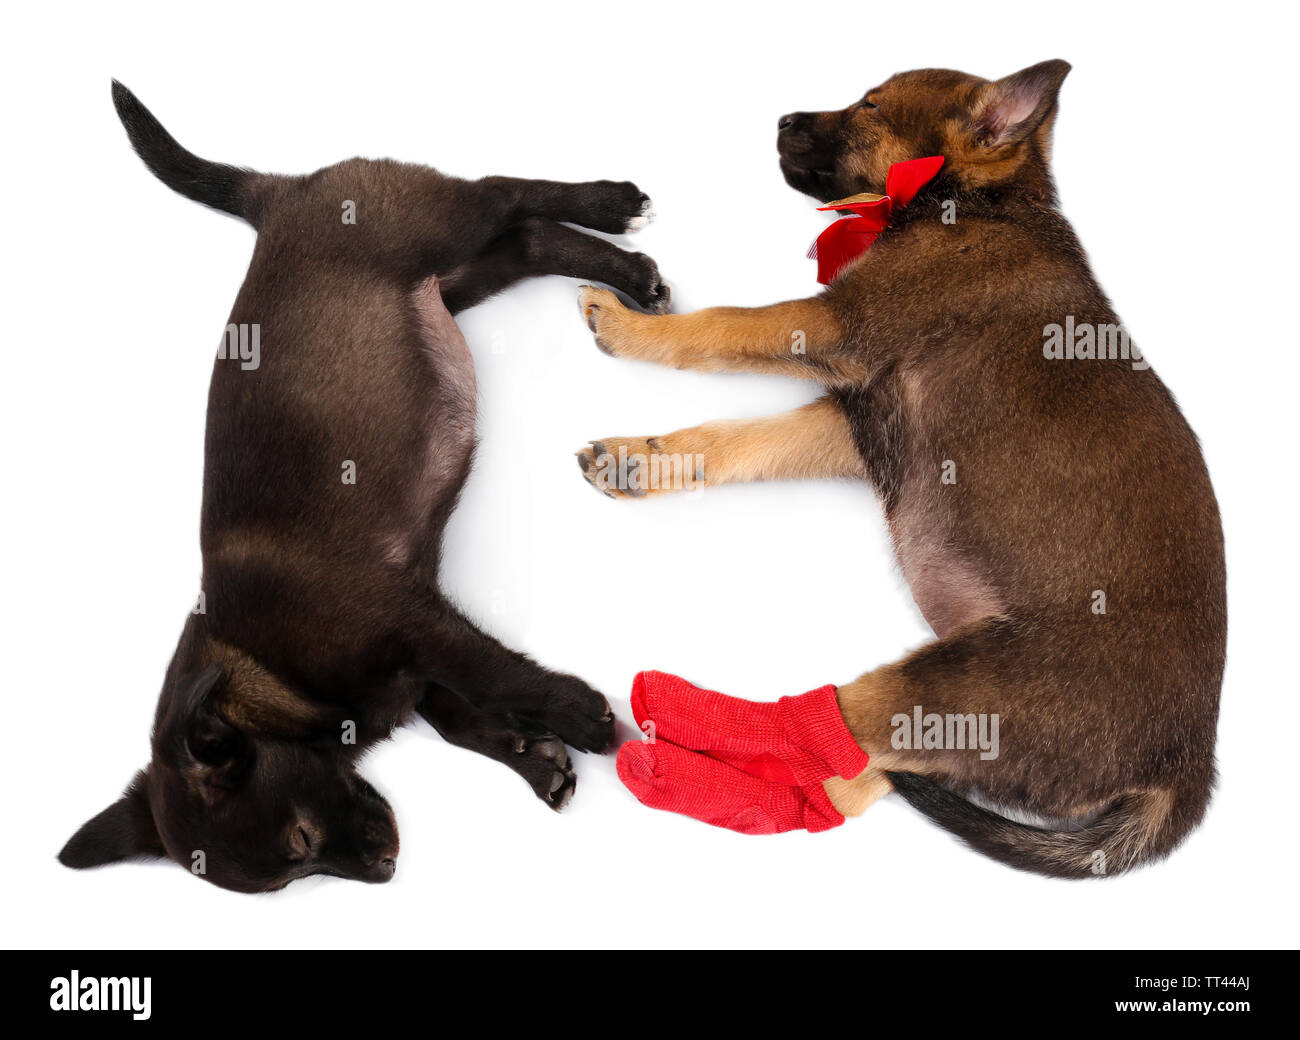 Sleeping puppies dressed in socks isolated on white - Stock Image